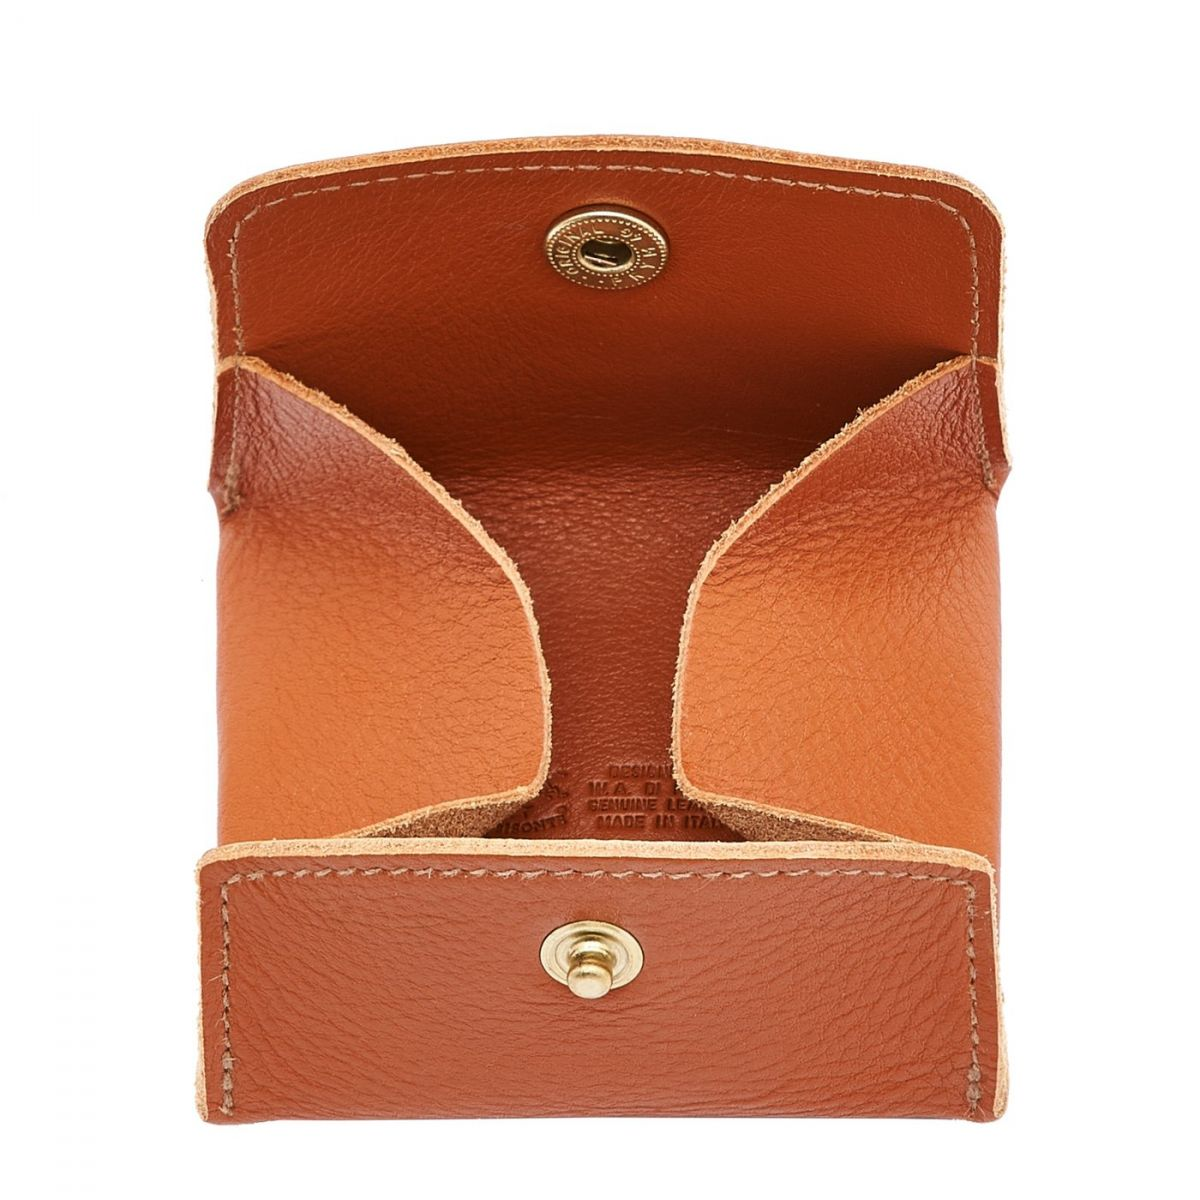 Coin Purse in Cowhide Double Leather color Caramel - SCP020 | Details